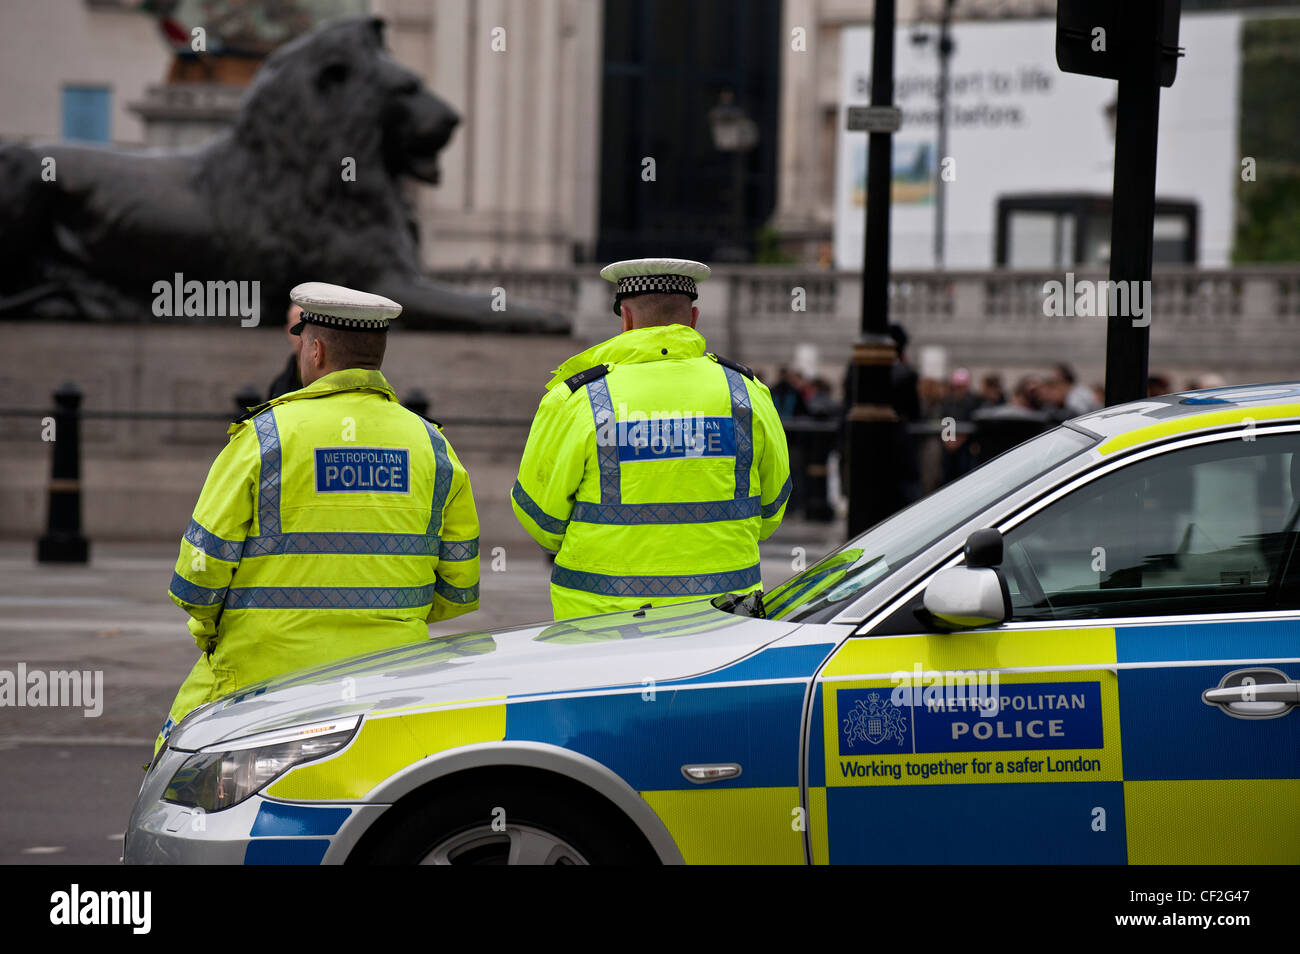 Metropolitan Police officers and car on duty in central London. - Stock Image